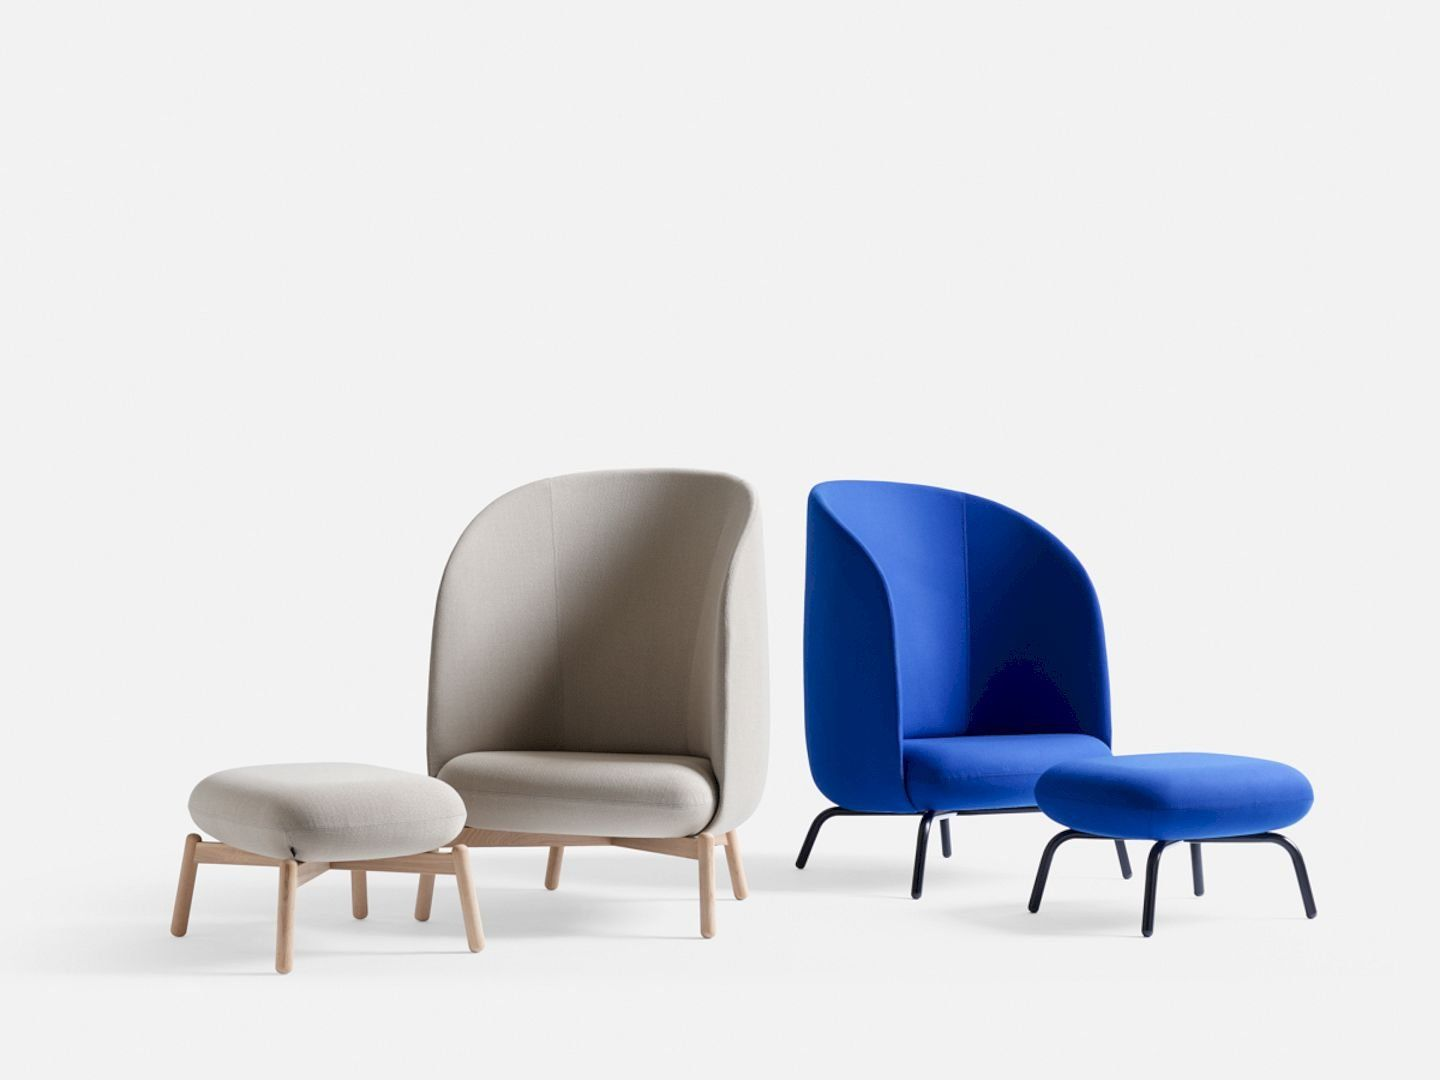 Stunning Lounge Chair Designs Collection  Https://www.designlisticle.com/lounge